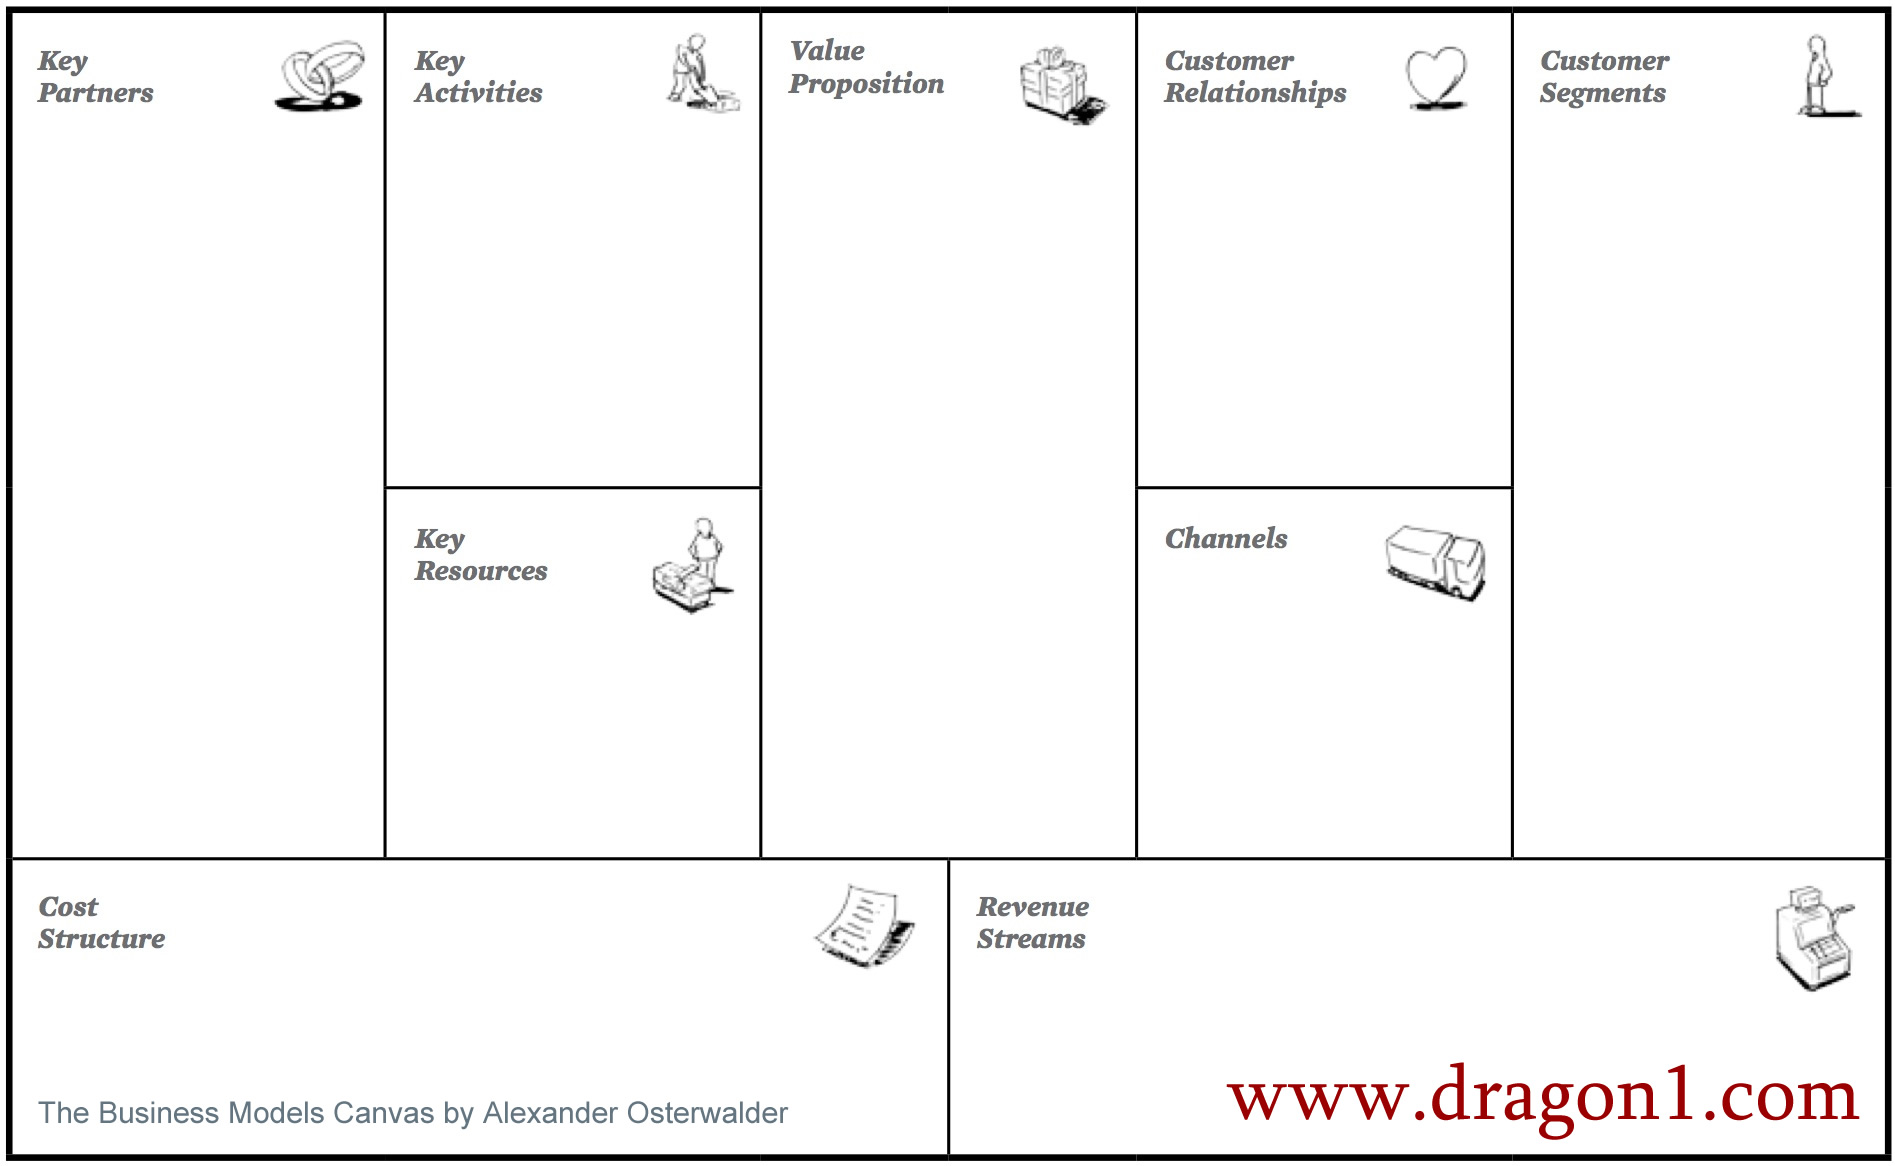 Business model canvas template dragon1 business model canvas template accmission Gallery